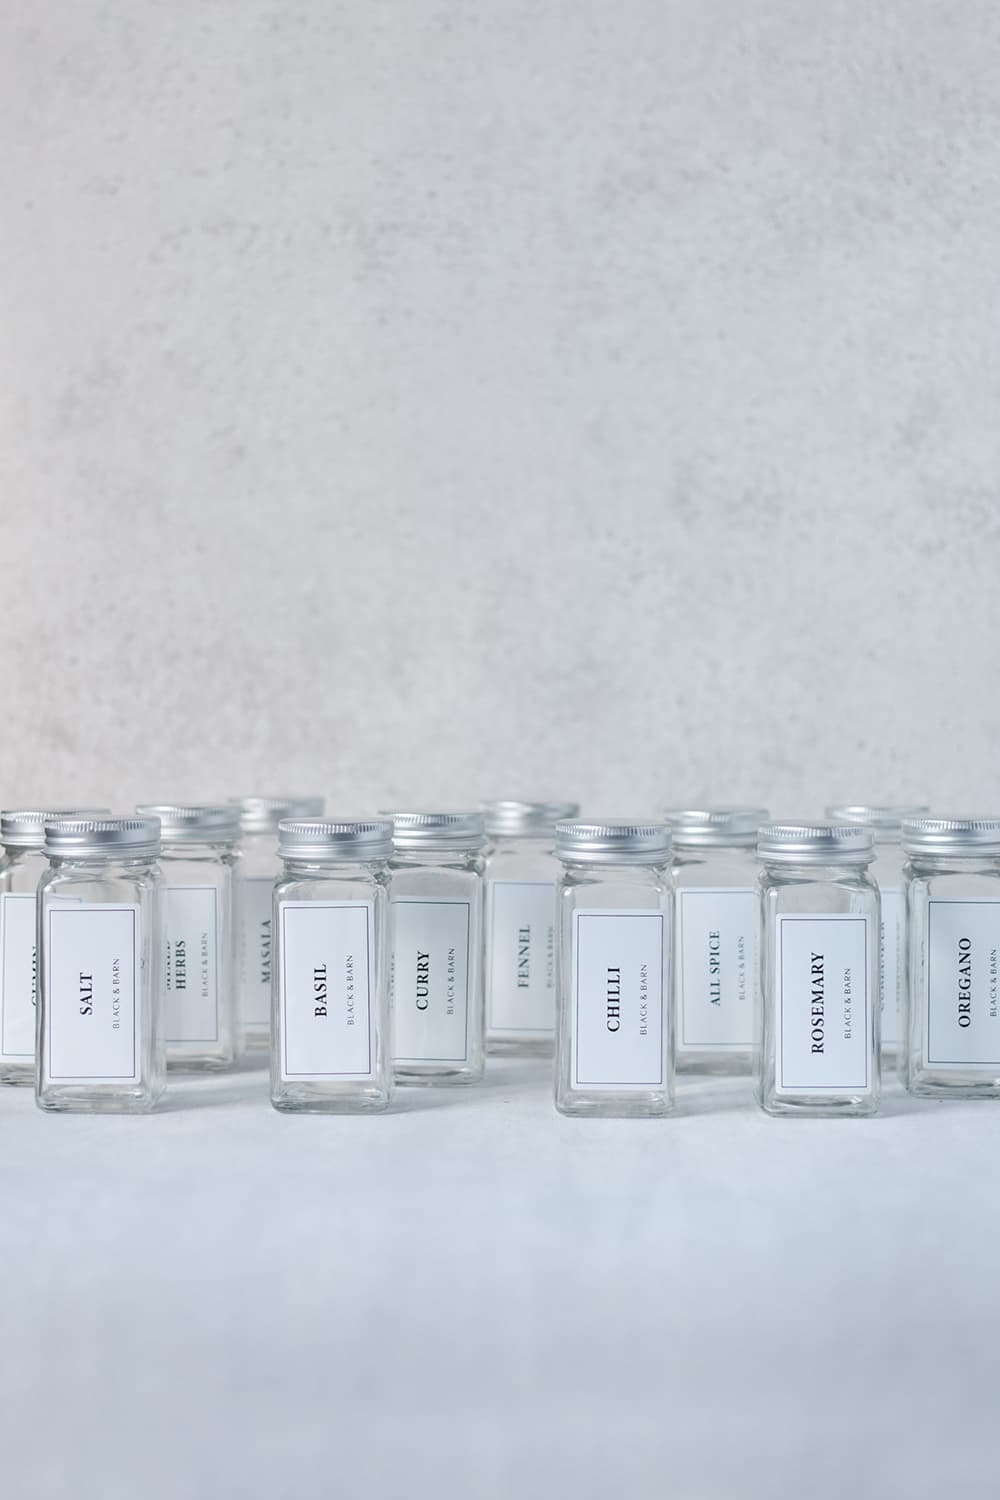 12 Piece Spice Jar Set with White Labels